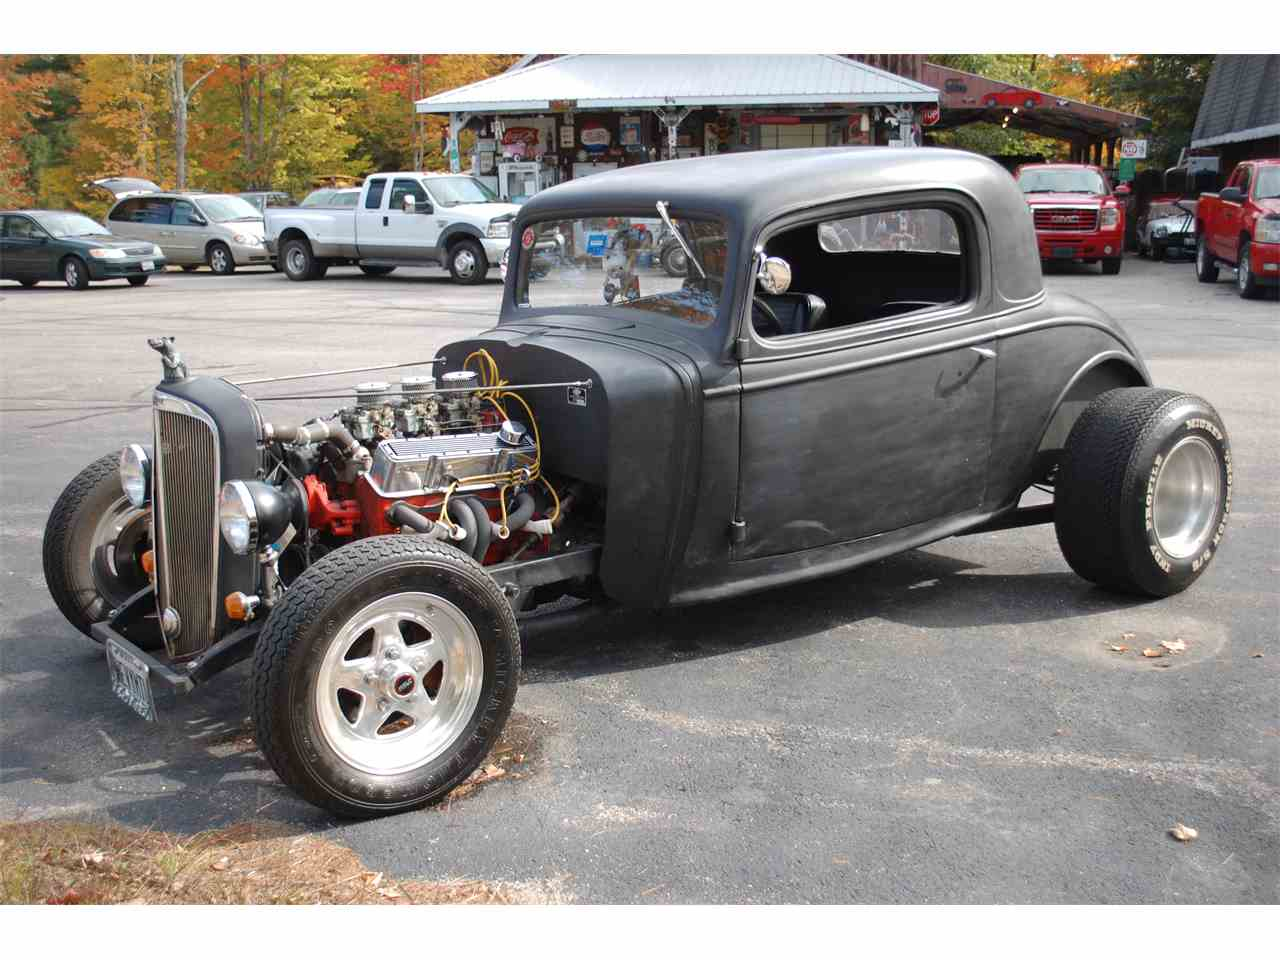 1934 Chevrolet 3-Window Coupe for Sale | ClassicCars.com | CC-1007984